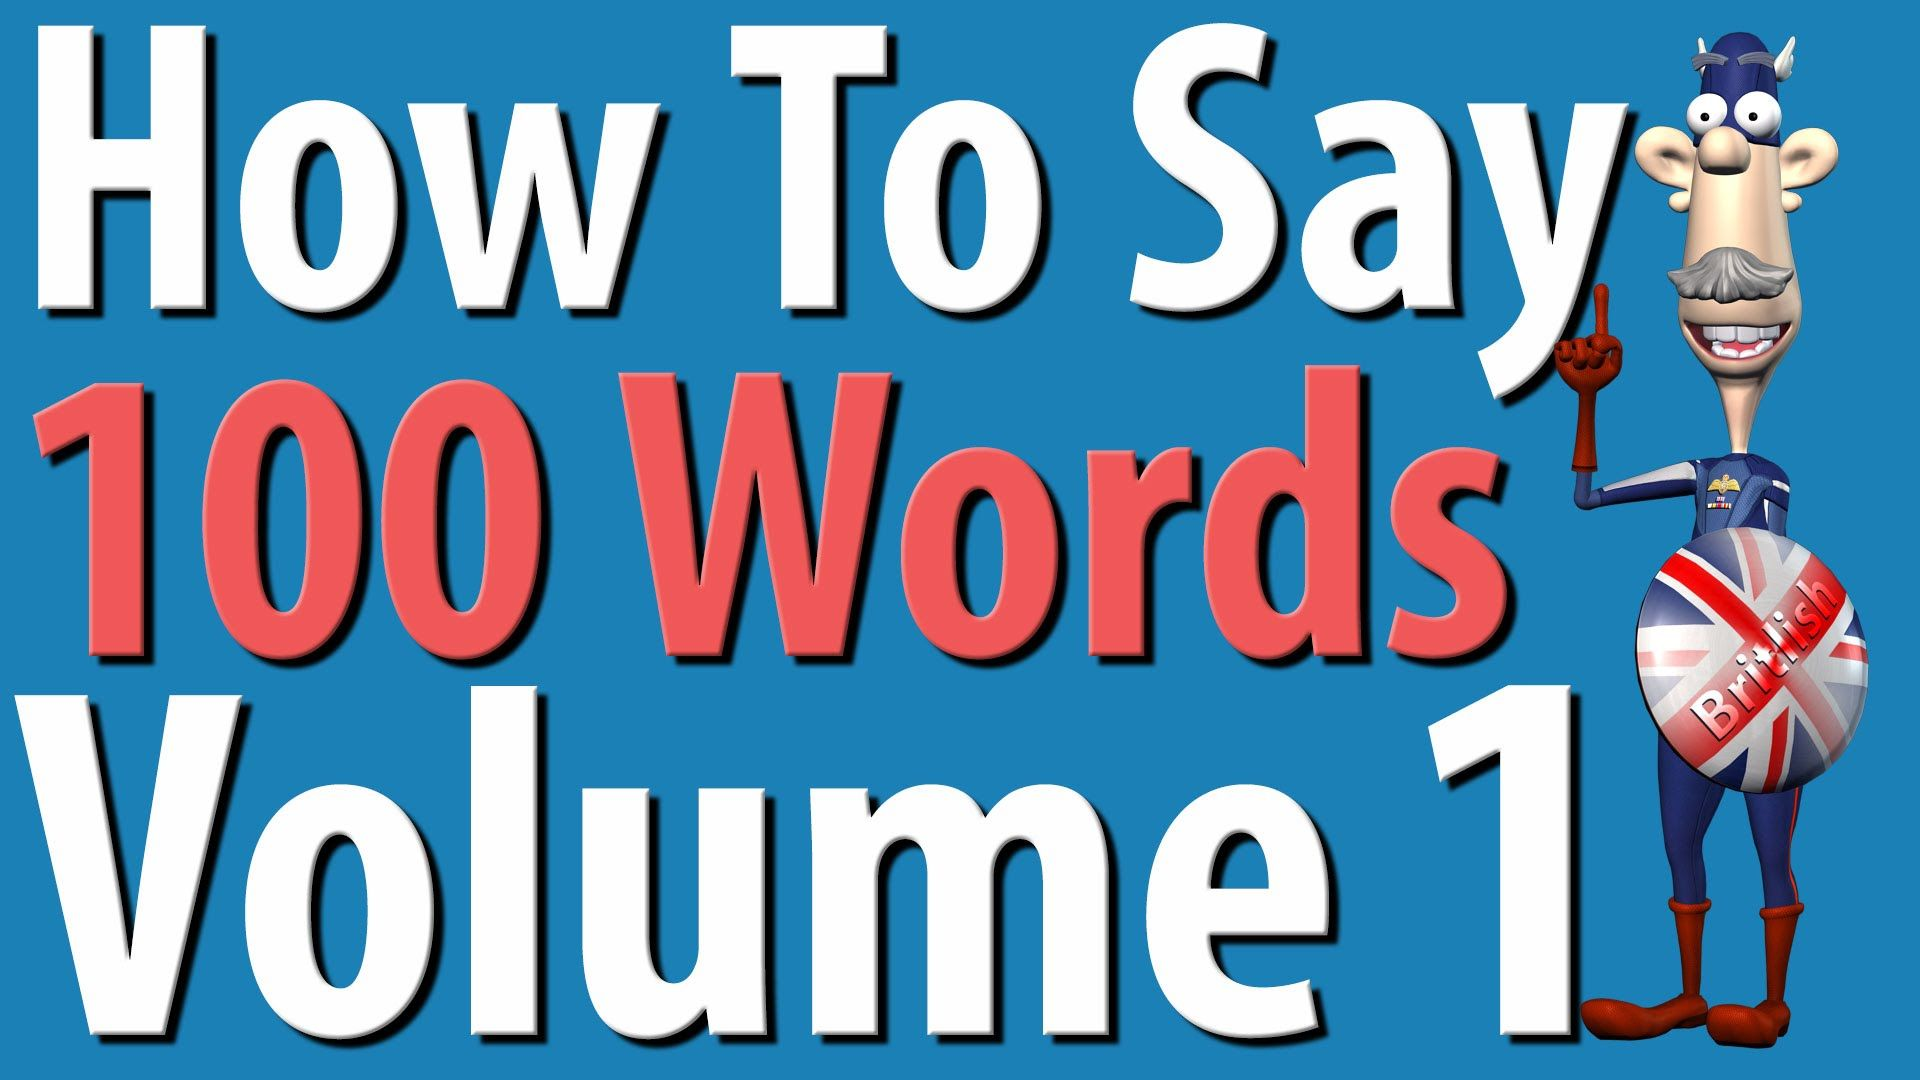 How to Say 100 Words in British English Vol 1 | British